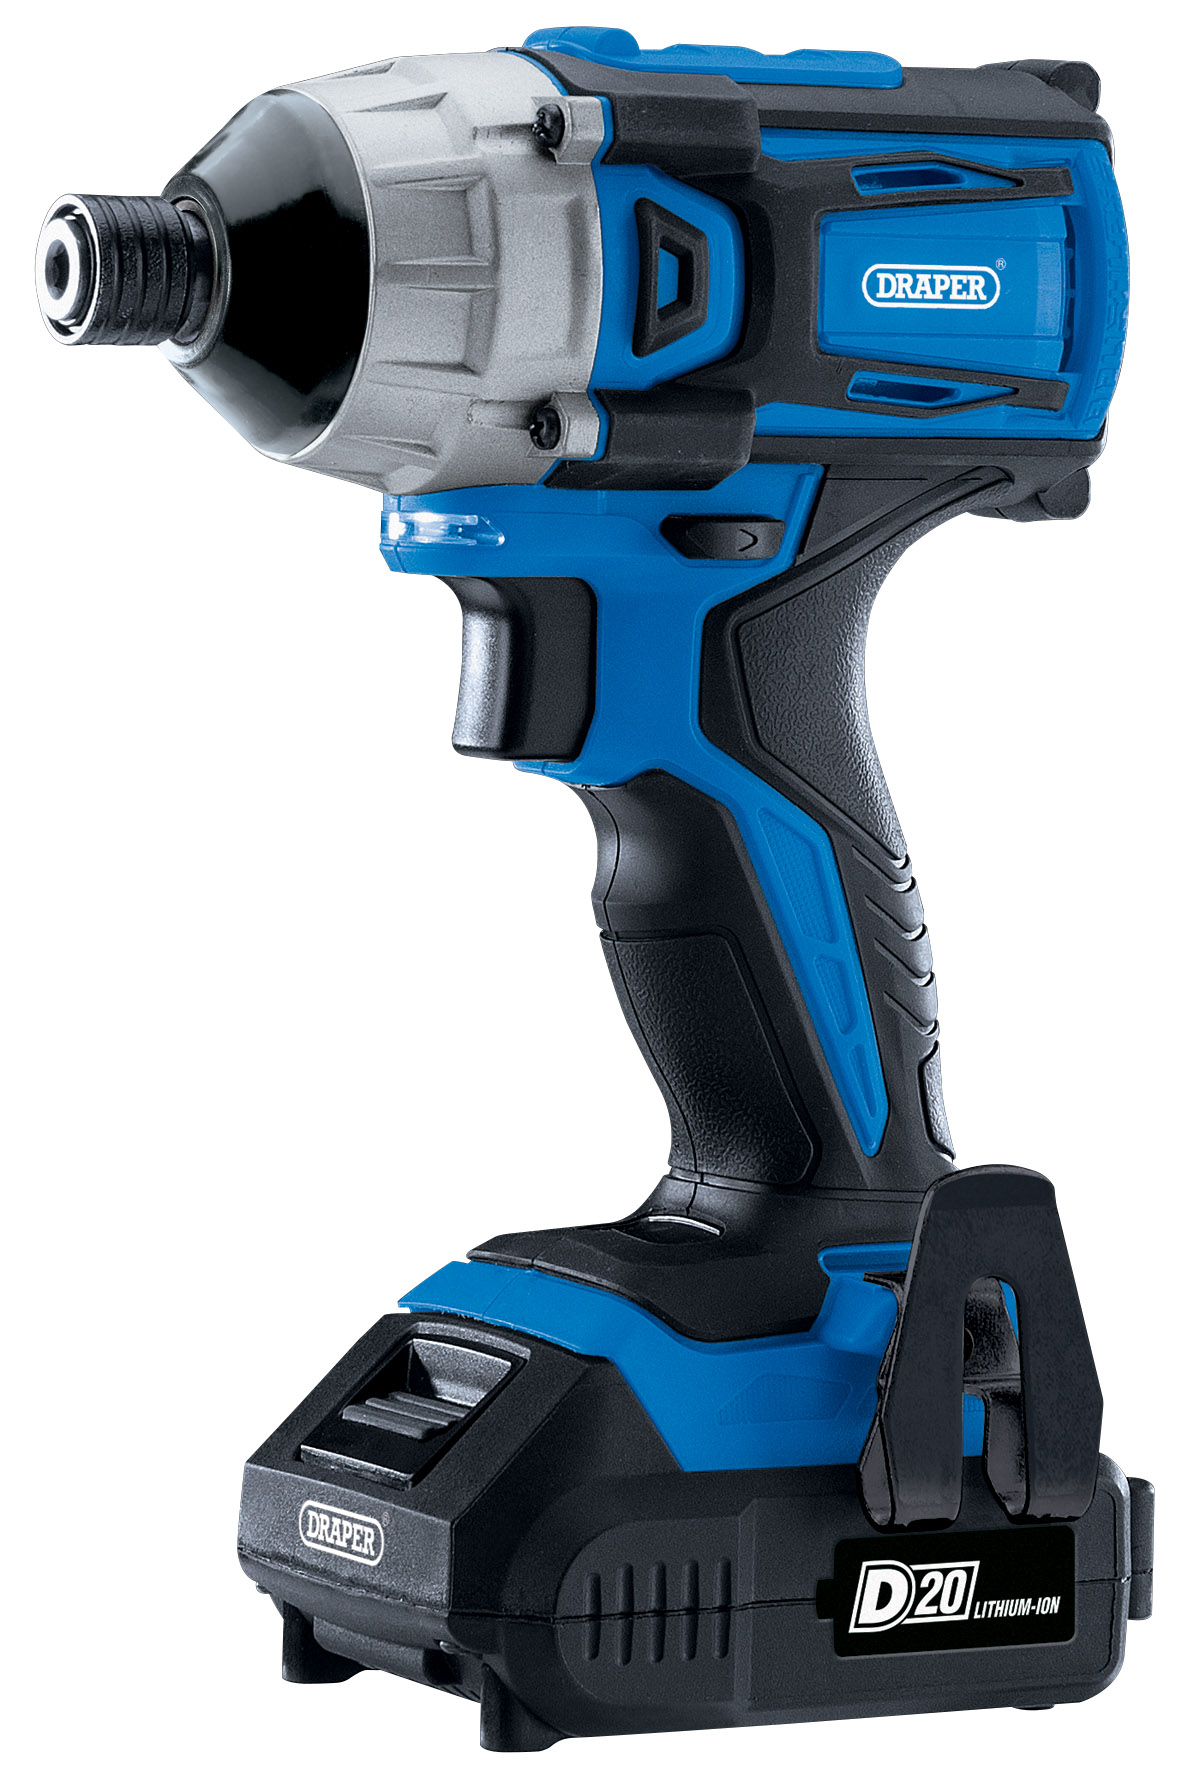 Review: Draper's brushless impact driver